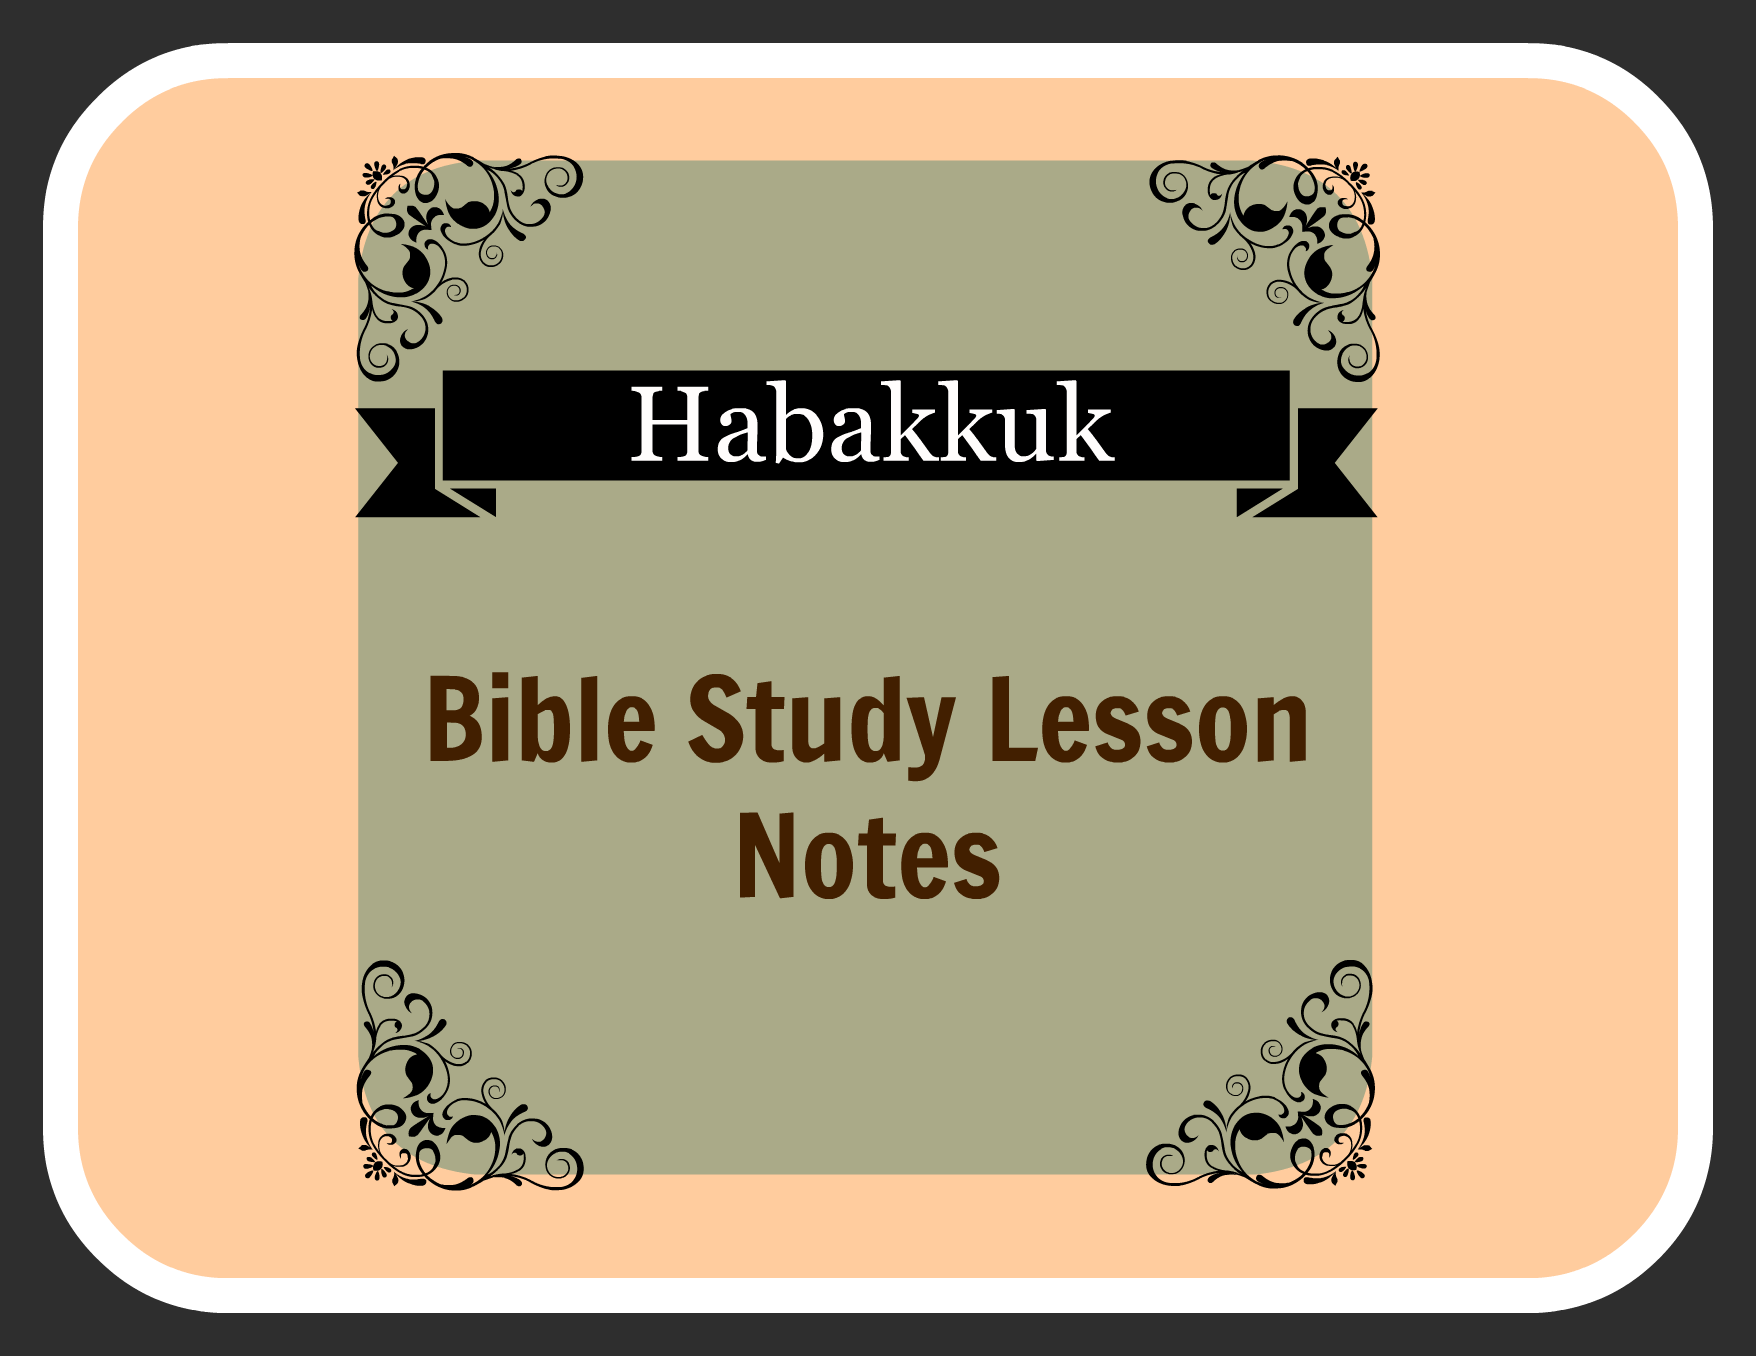 Habakkuk -- Bible Study Lesson Notes